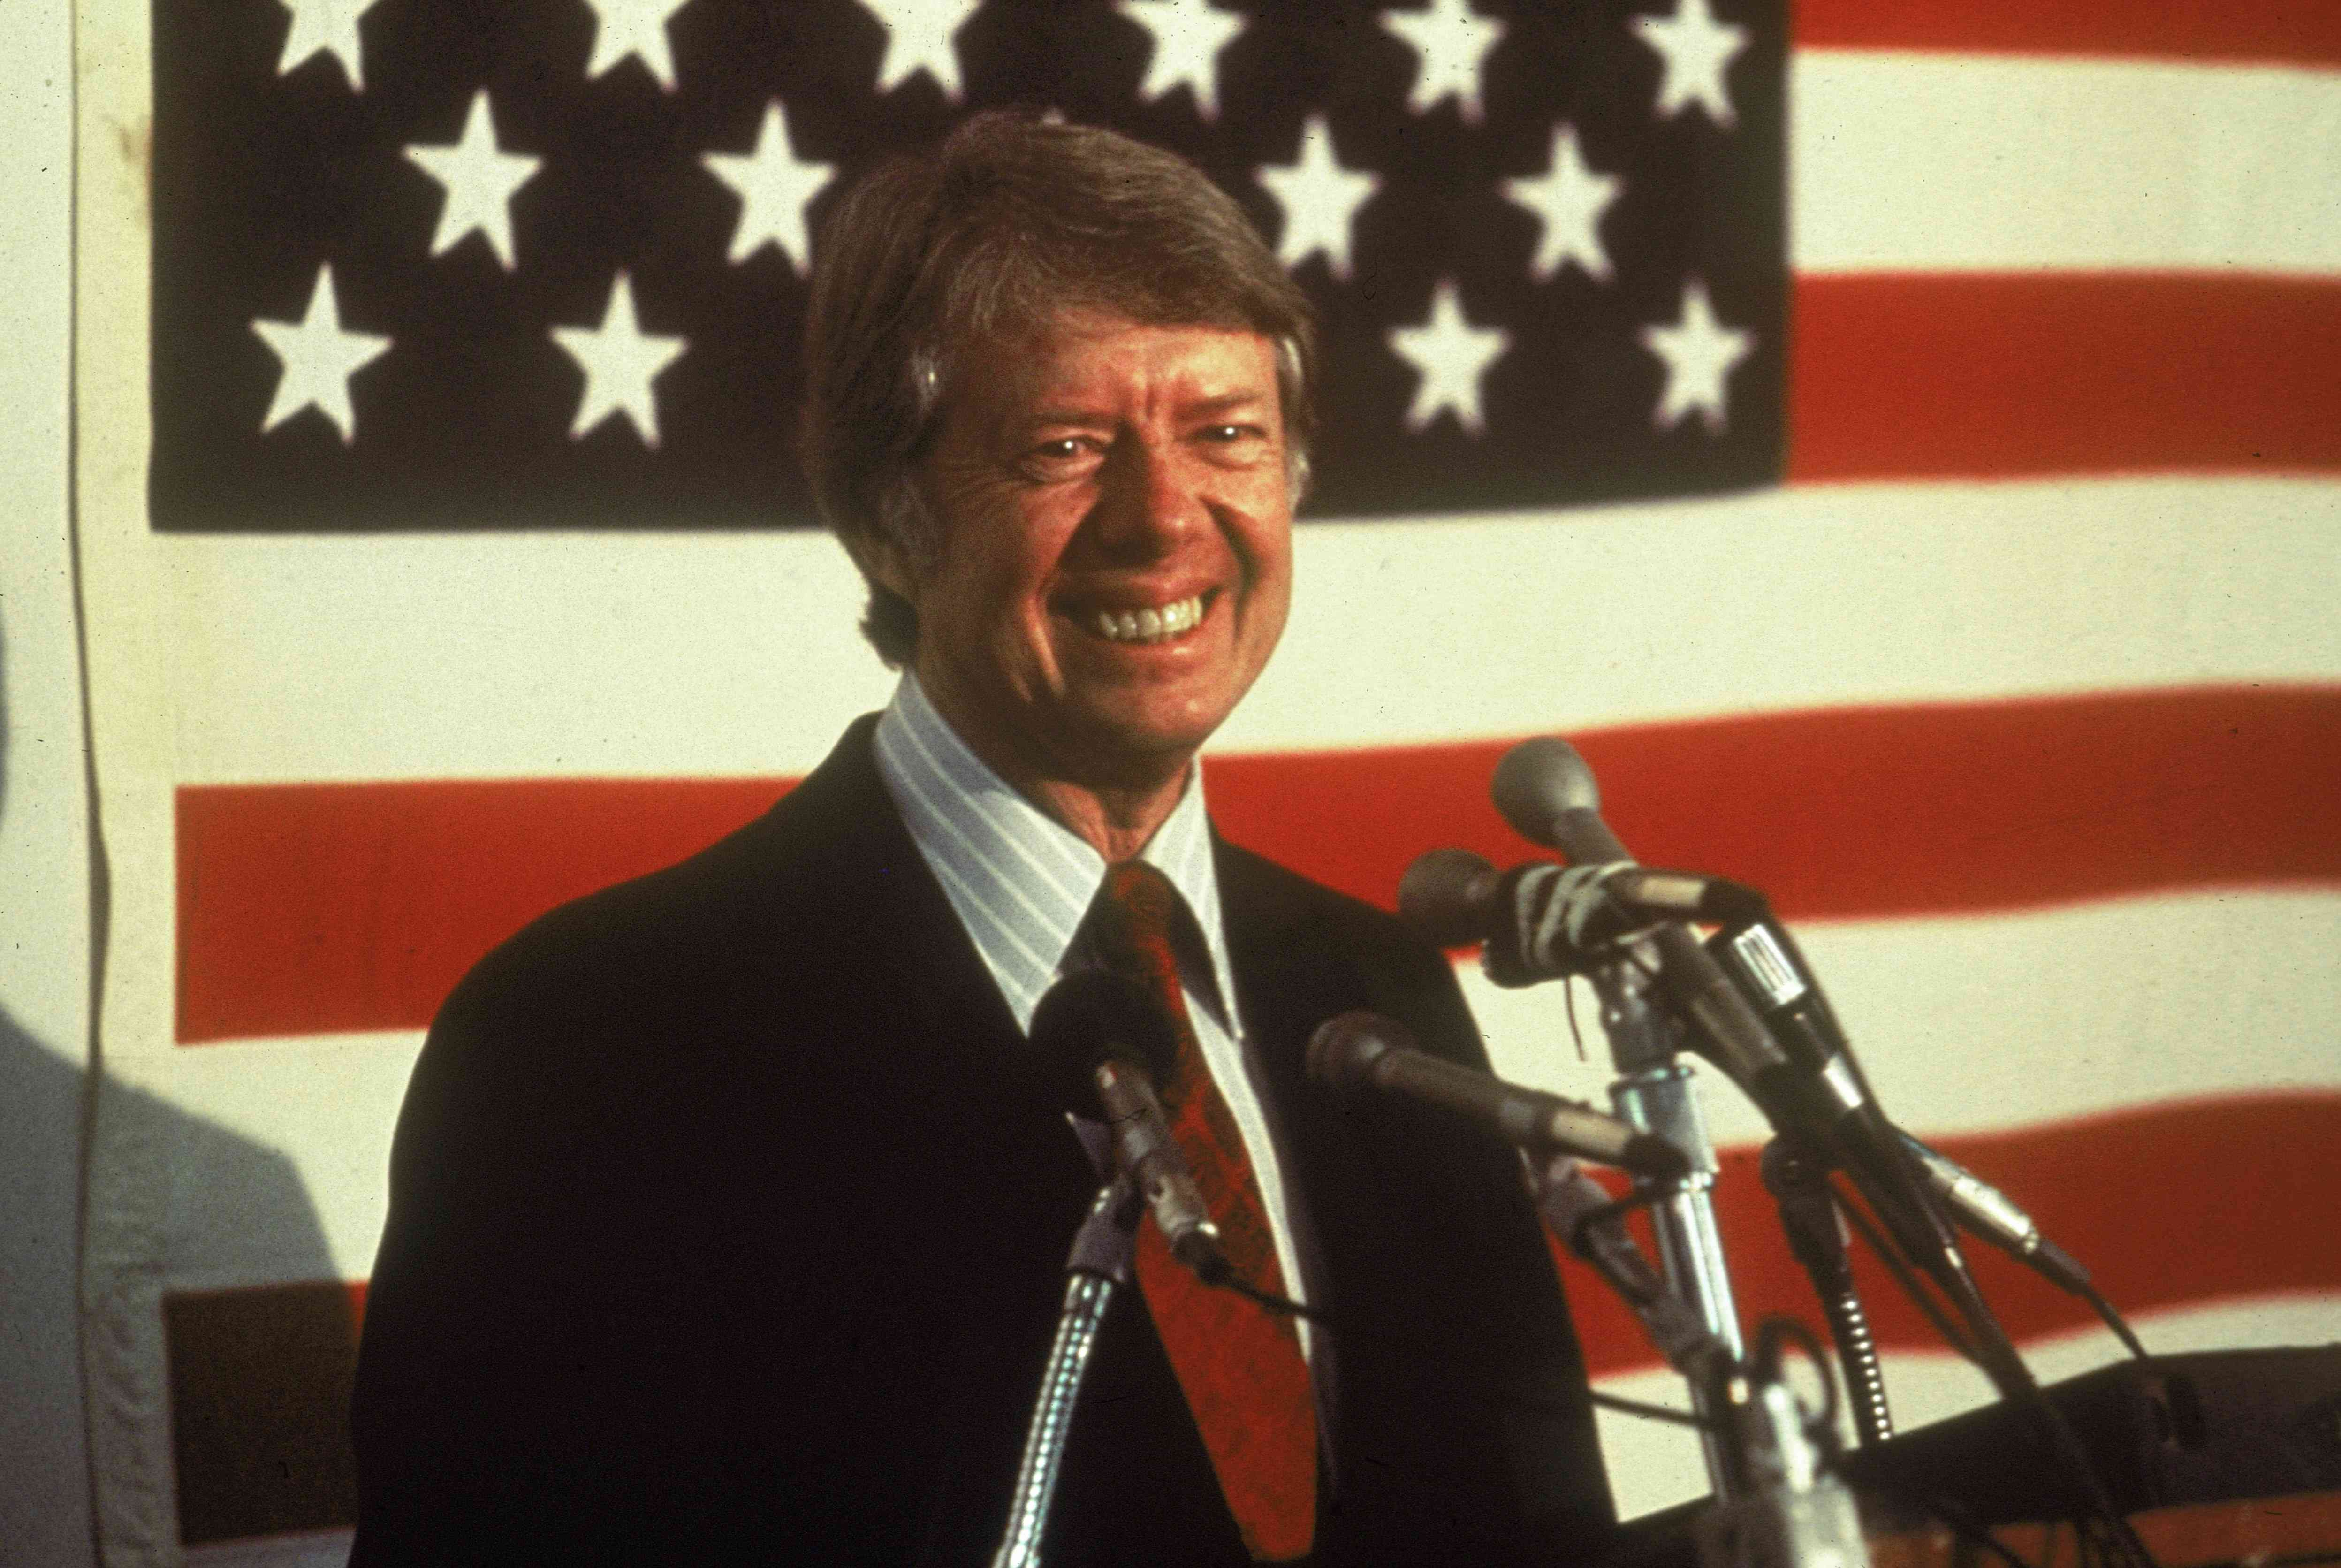 Jimmy Carter In Front Of U.S. Flag